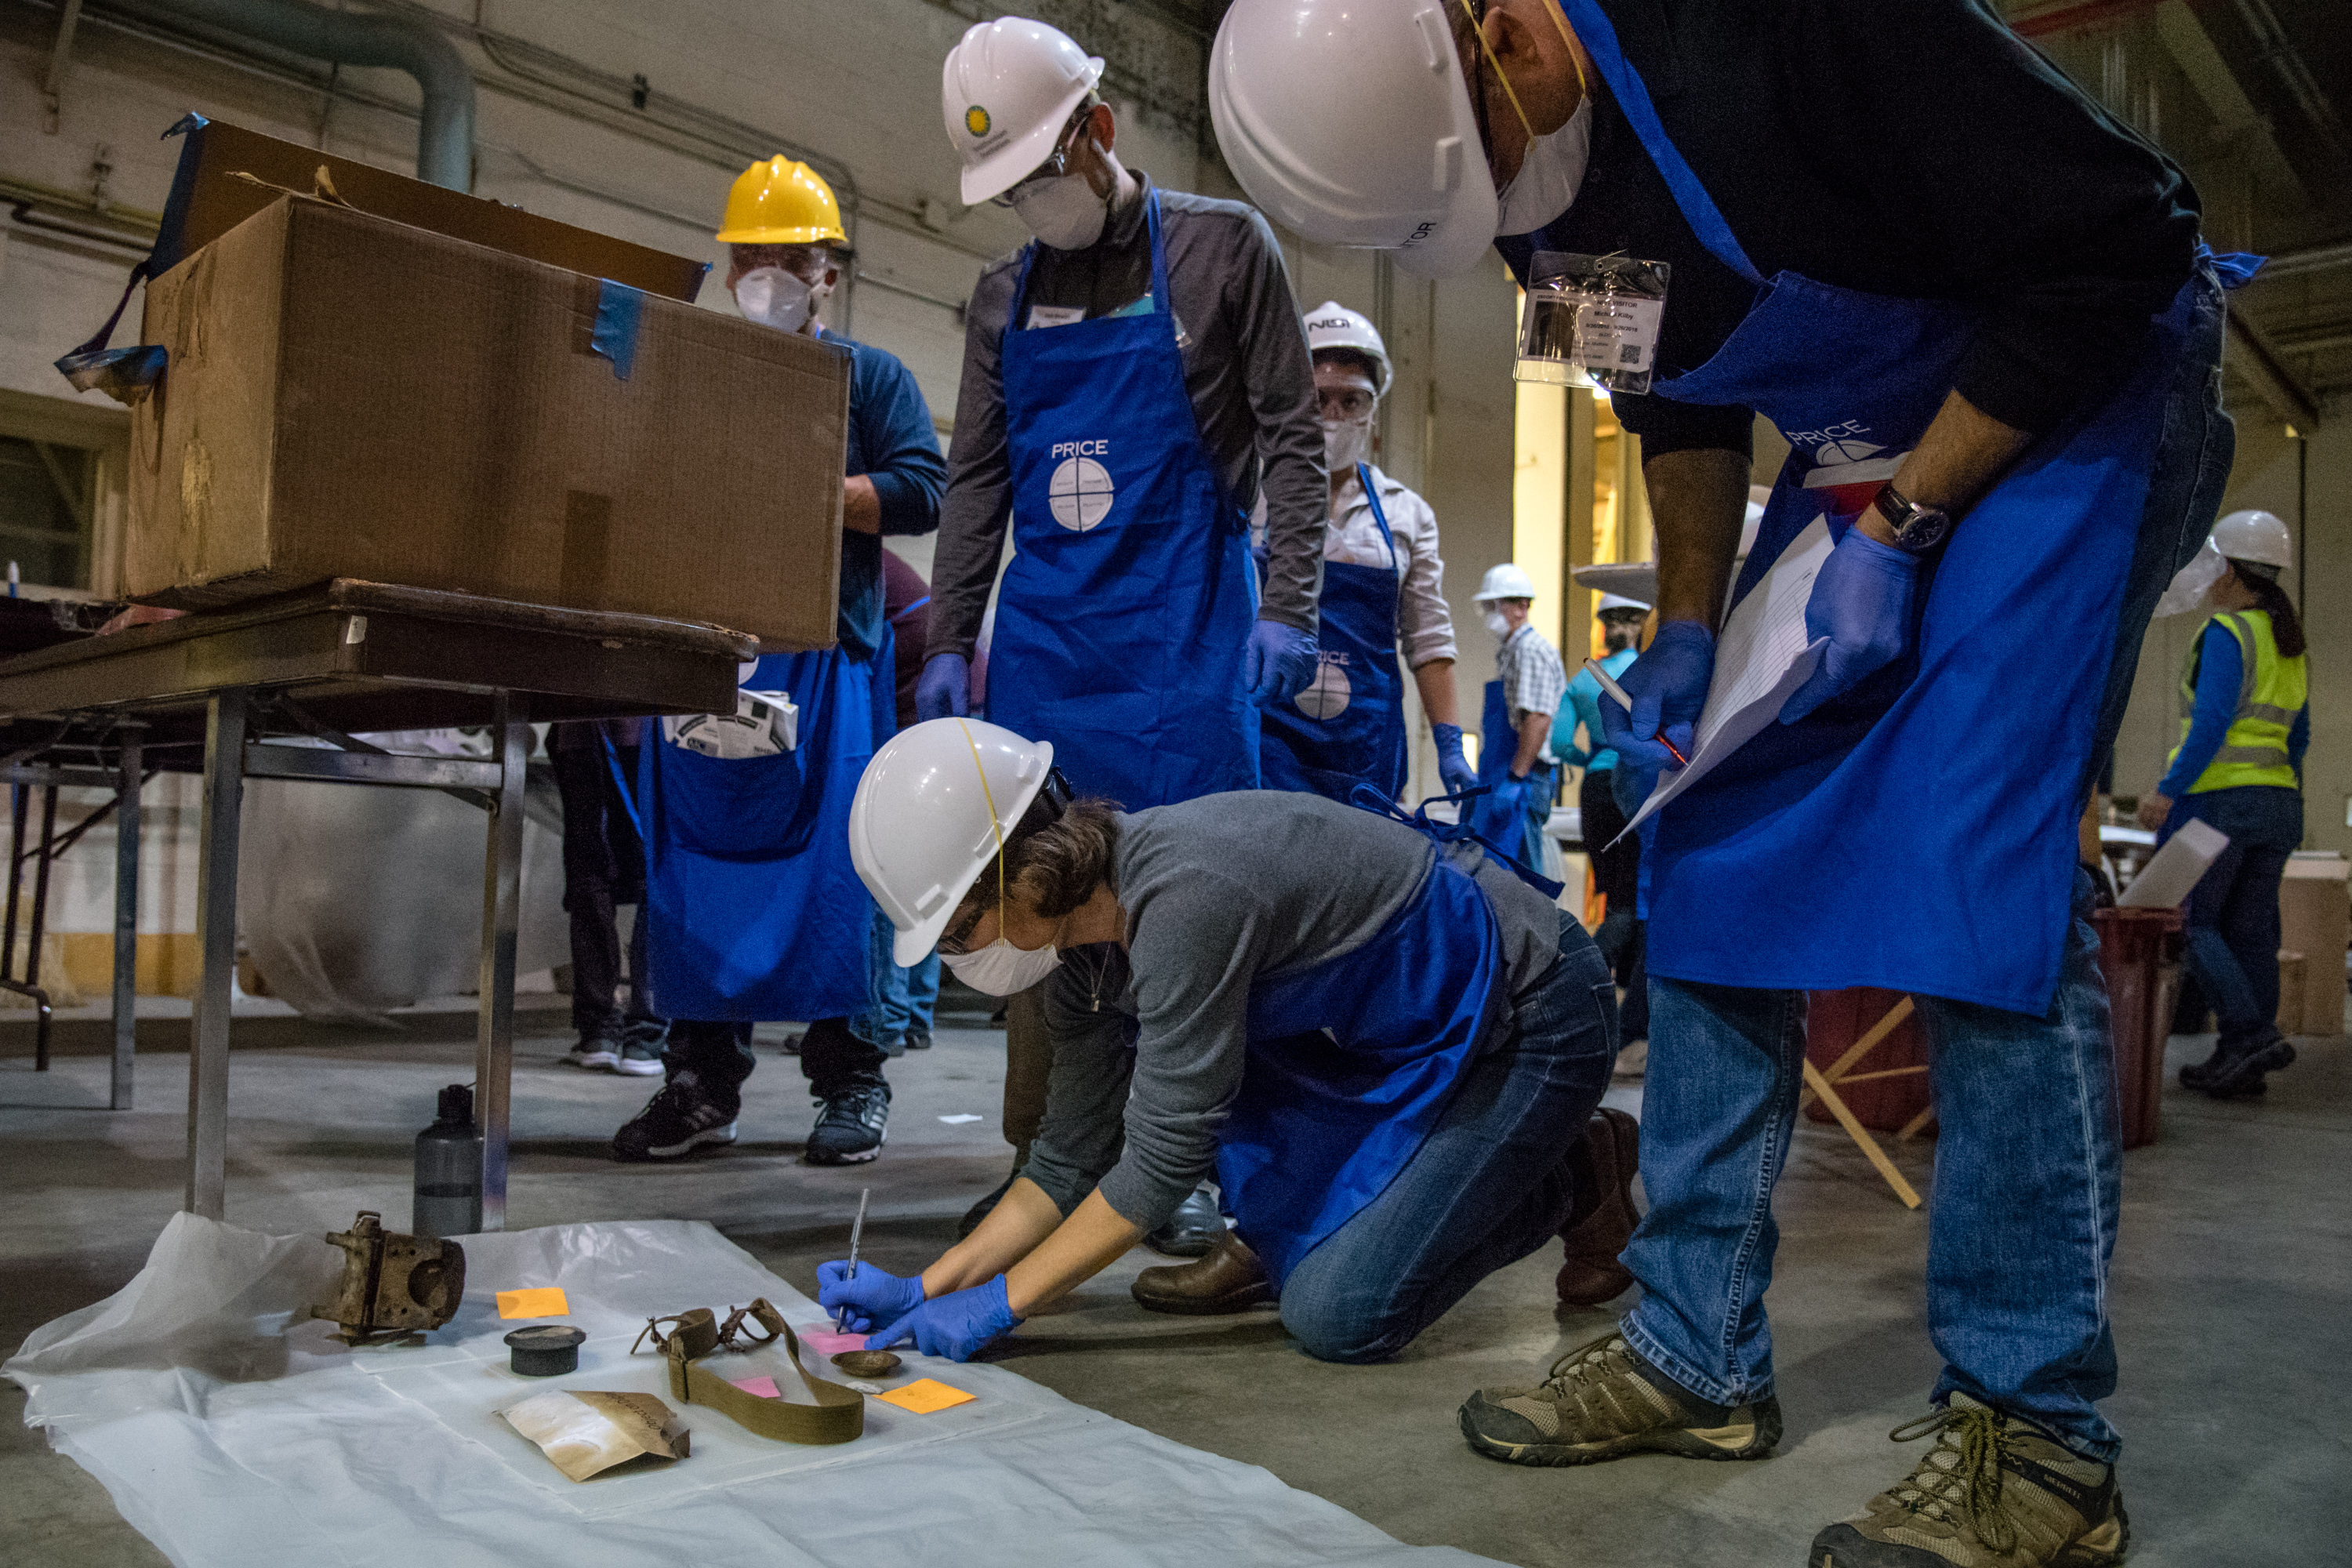 Smithsonian employees wearing hard hats, blue smocks, and respirators kneel over artifacts and record them on their clipboards